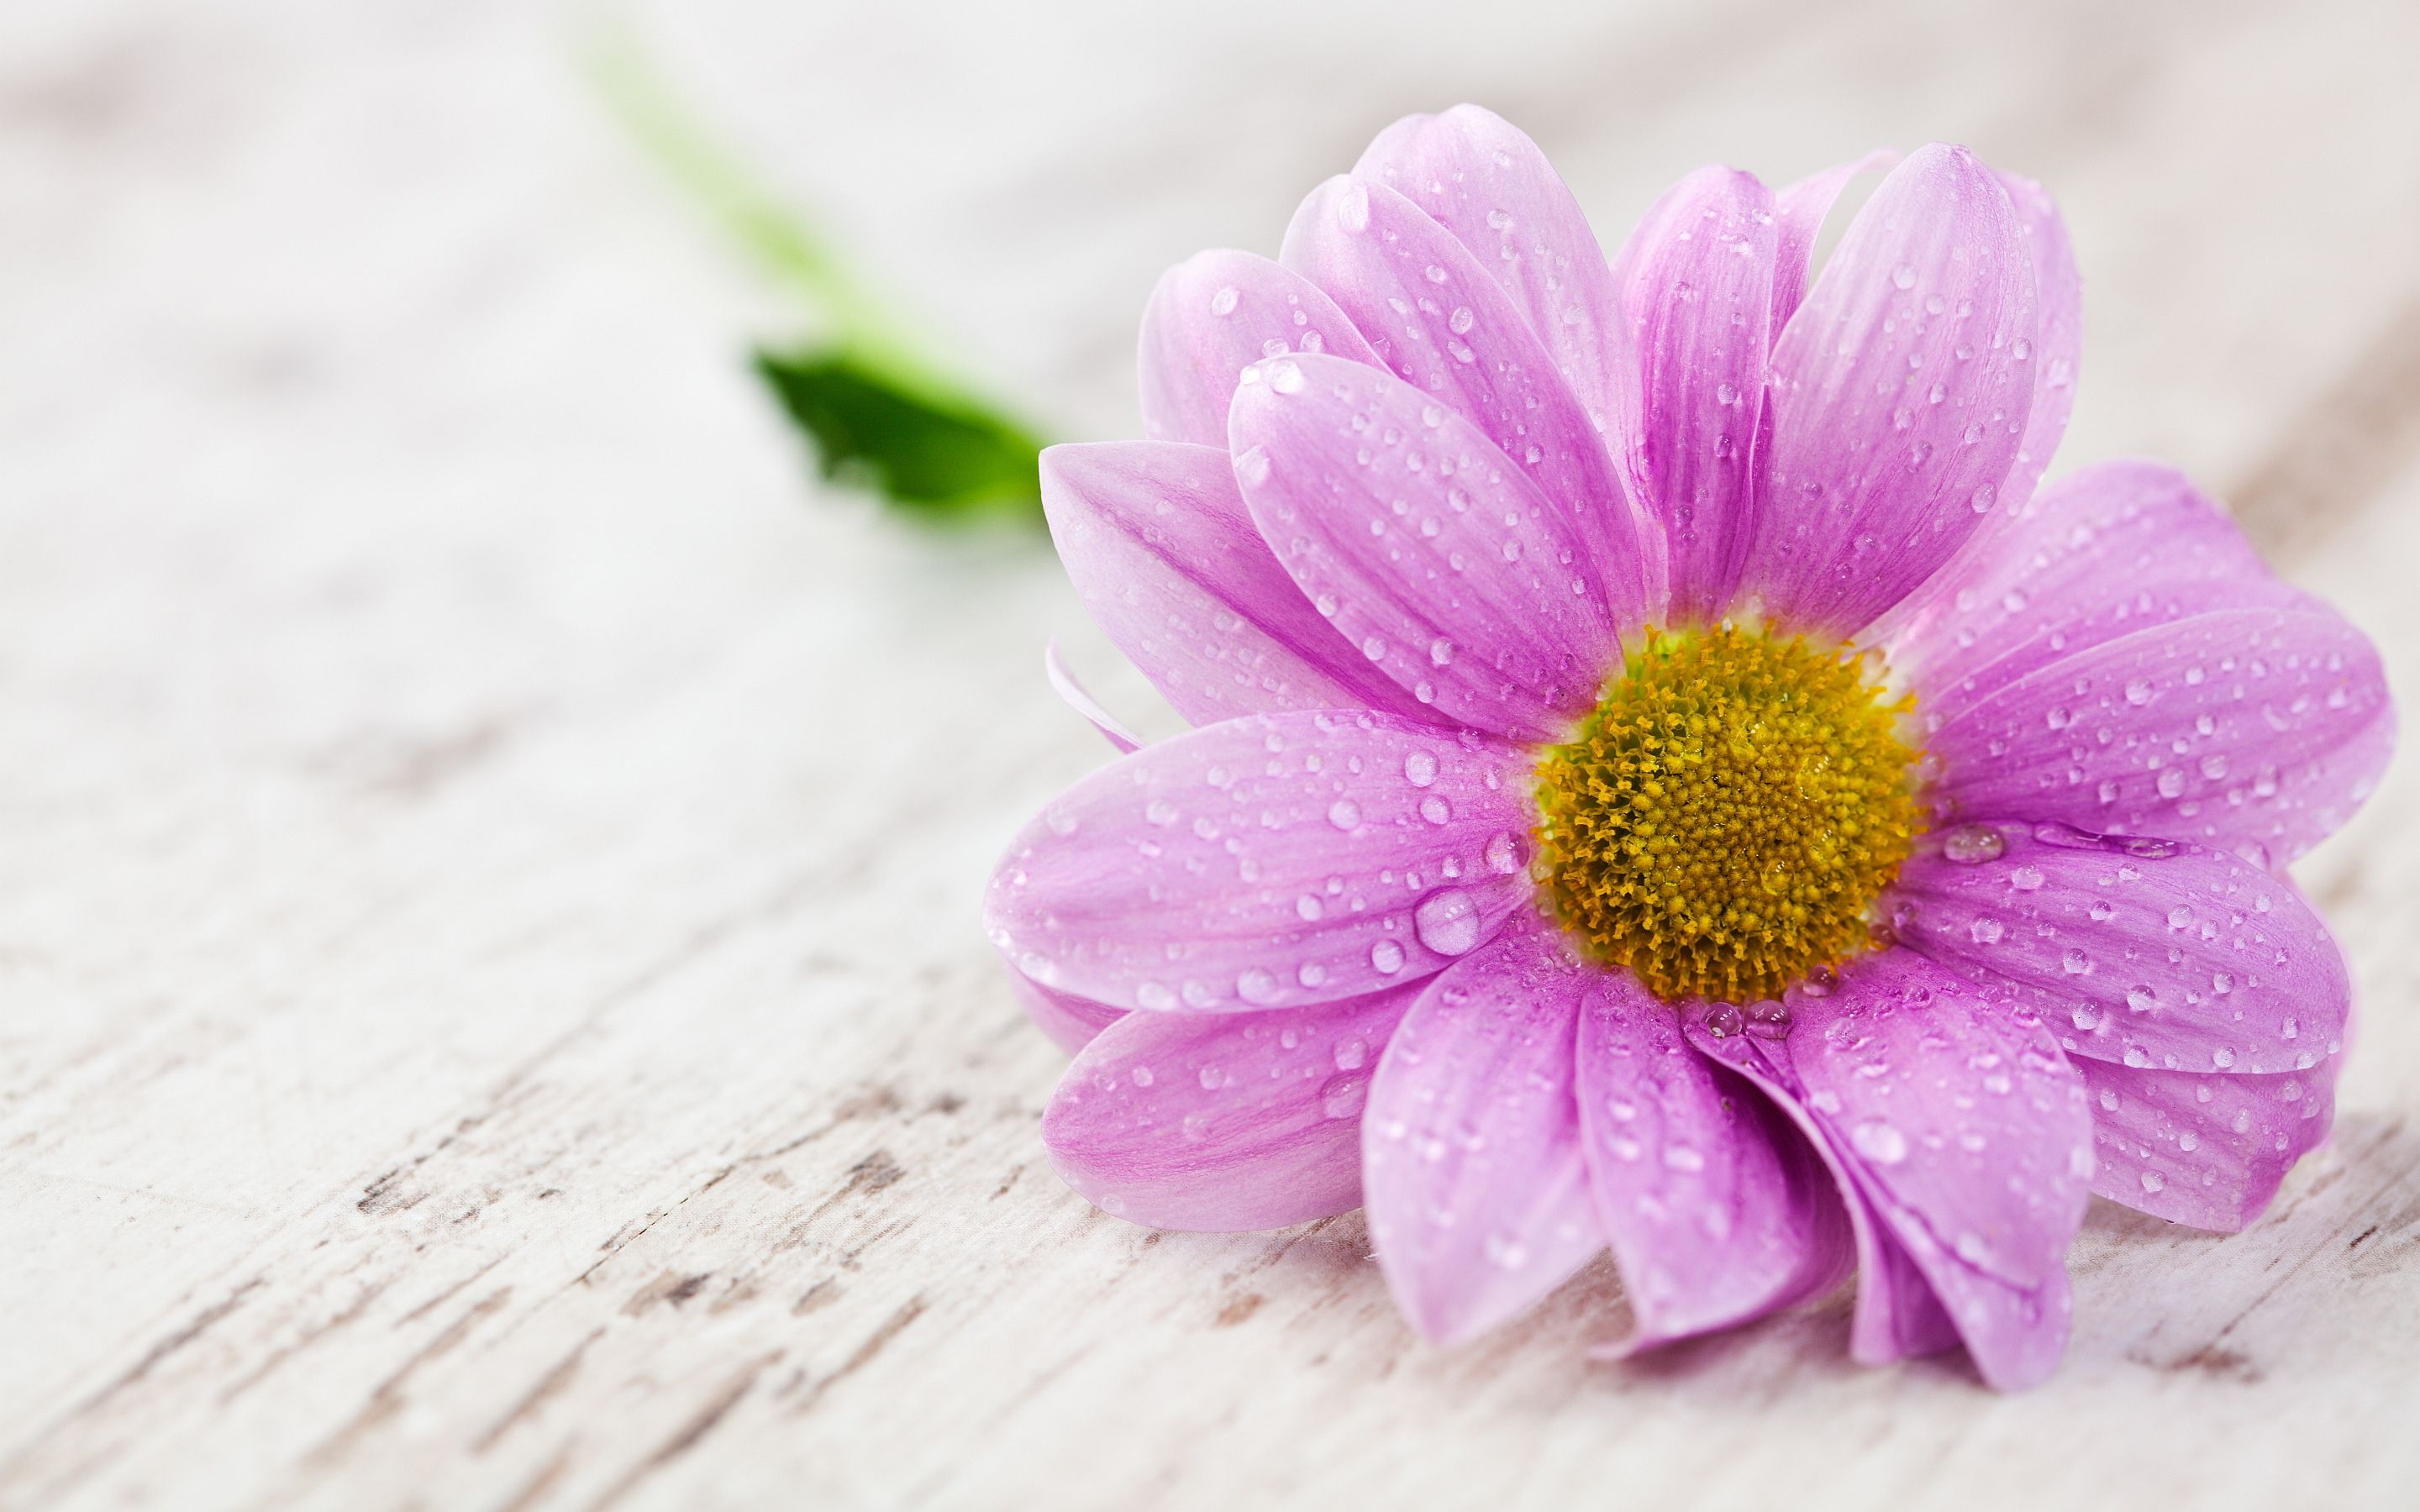 40 beautiful flower wallpapers free to download beautiful